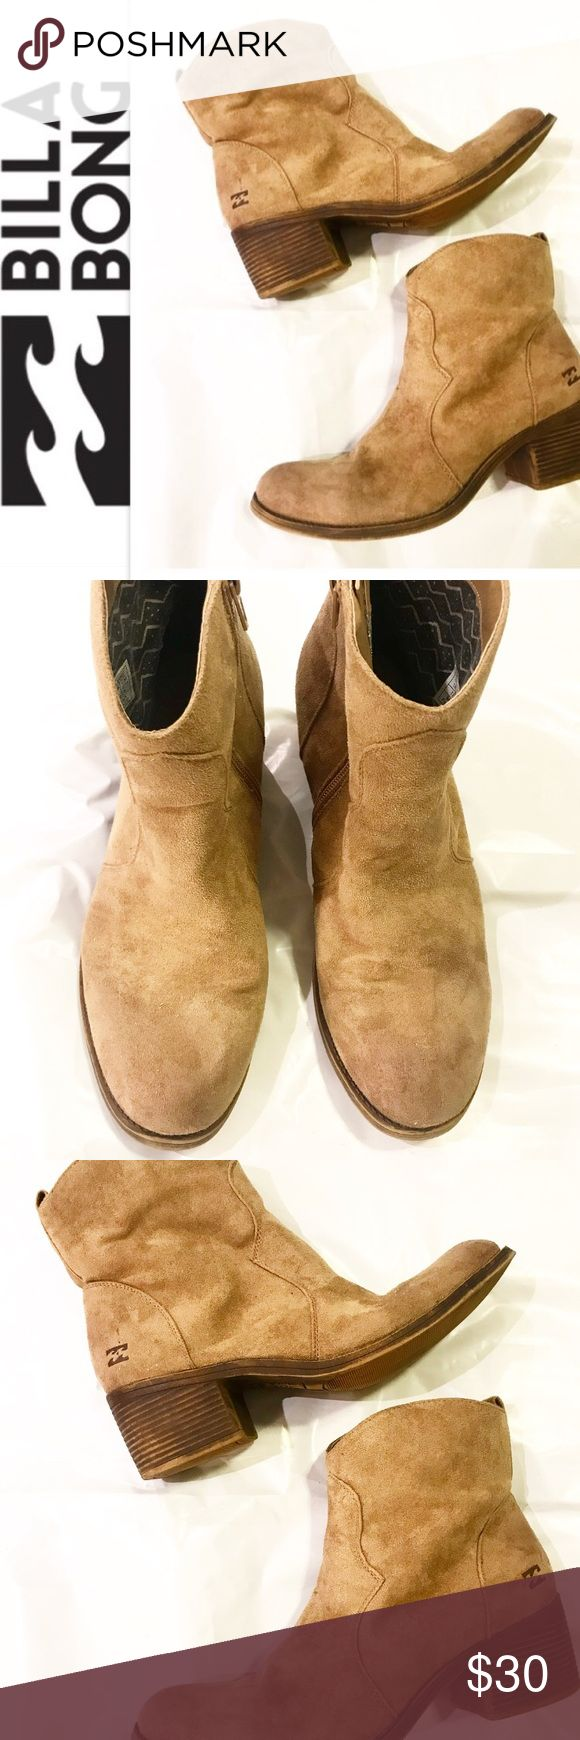 Billabong brown boots size 10 Billabong brown ankle boots size 10.  Pre-owned with some wear but in overall good condition! Billabong Shoes Ankle Boots & Booties